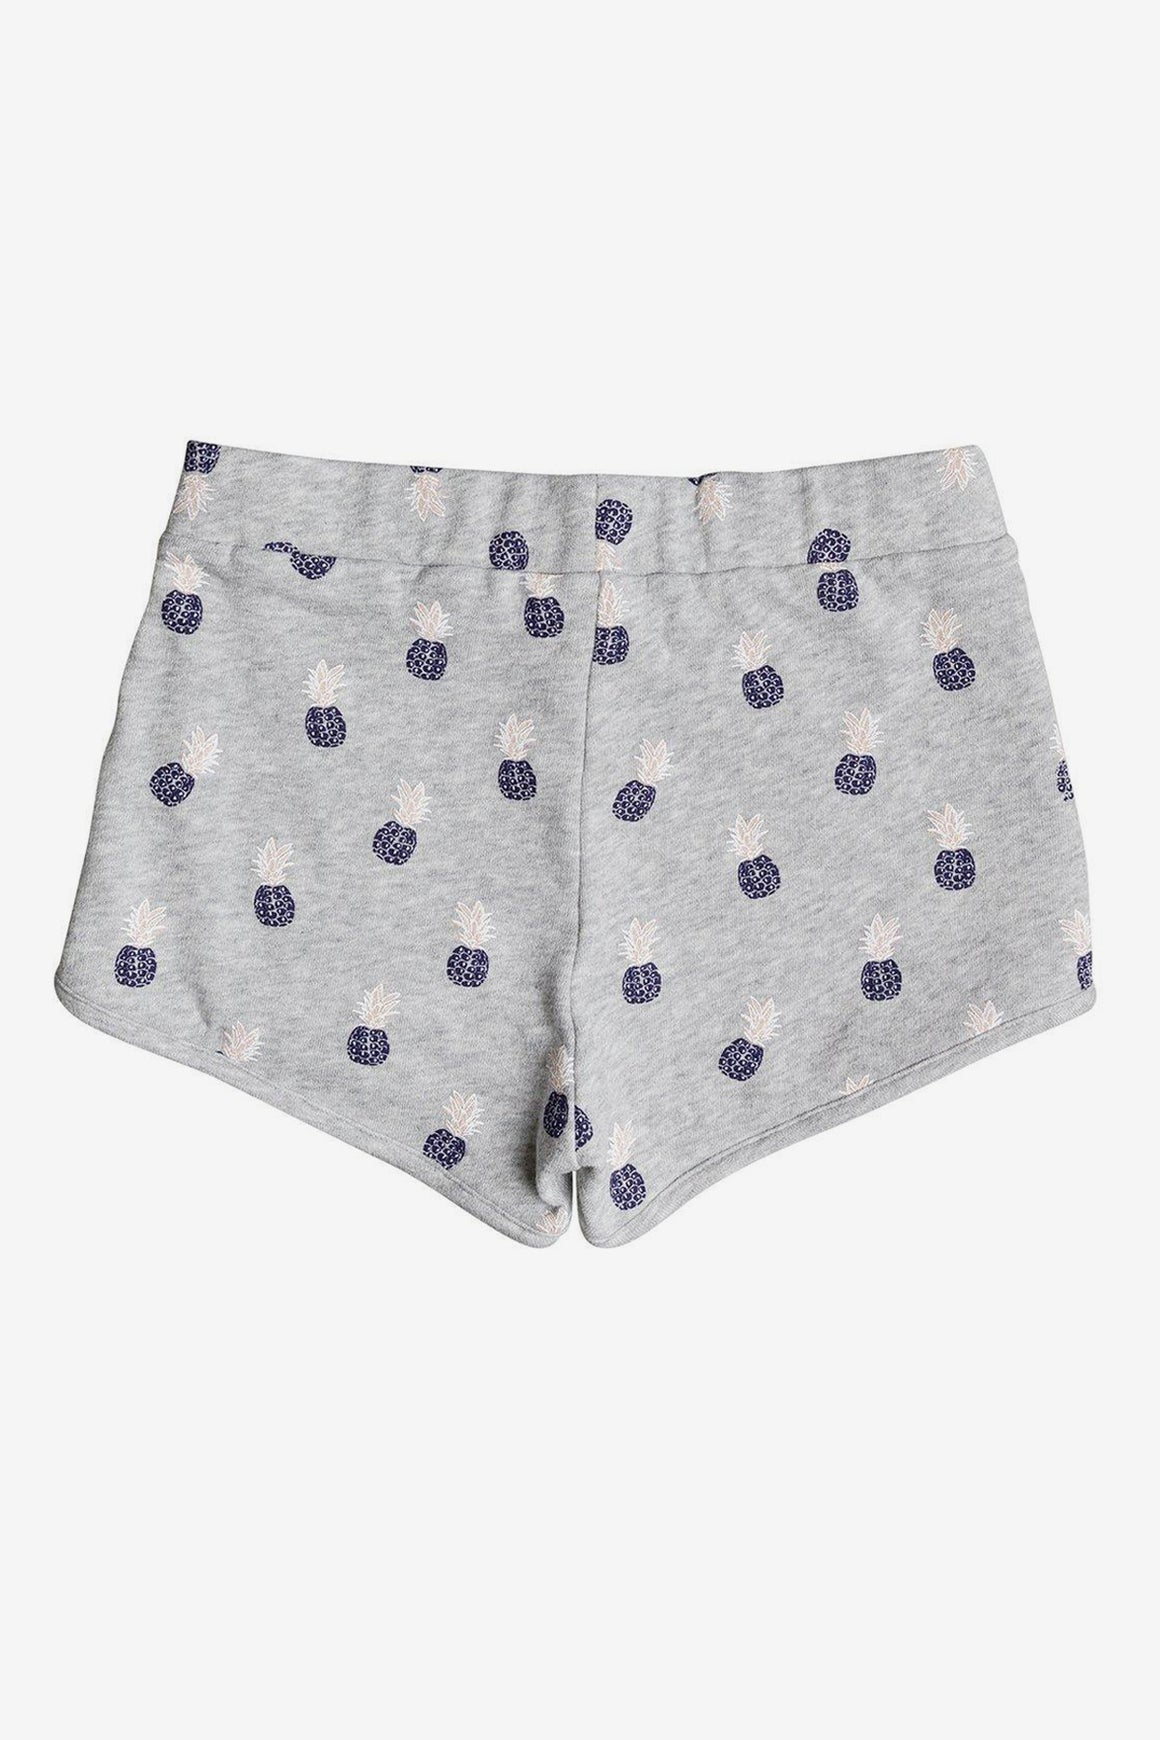 Roxy Pineapple Short